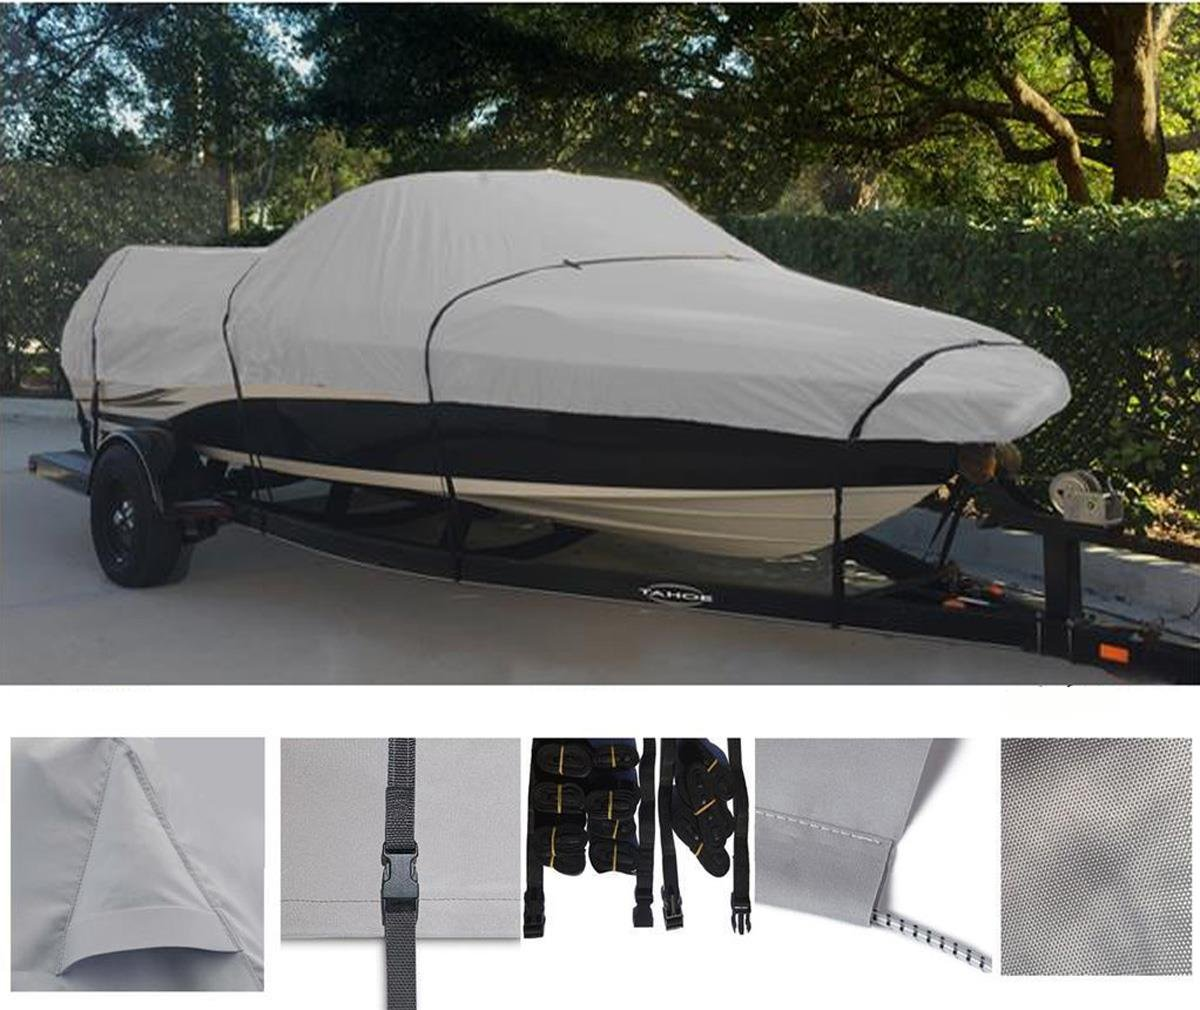 GREY, STORAGE, TRAVEL, MOORING BOAT COVER FOR Bayliner 1900 Capri Cuddy 1985 1986 1987 1988 by SBU